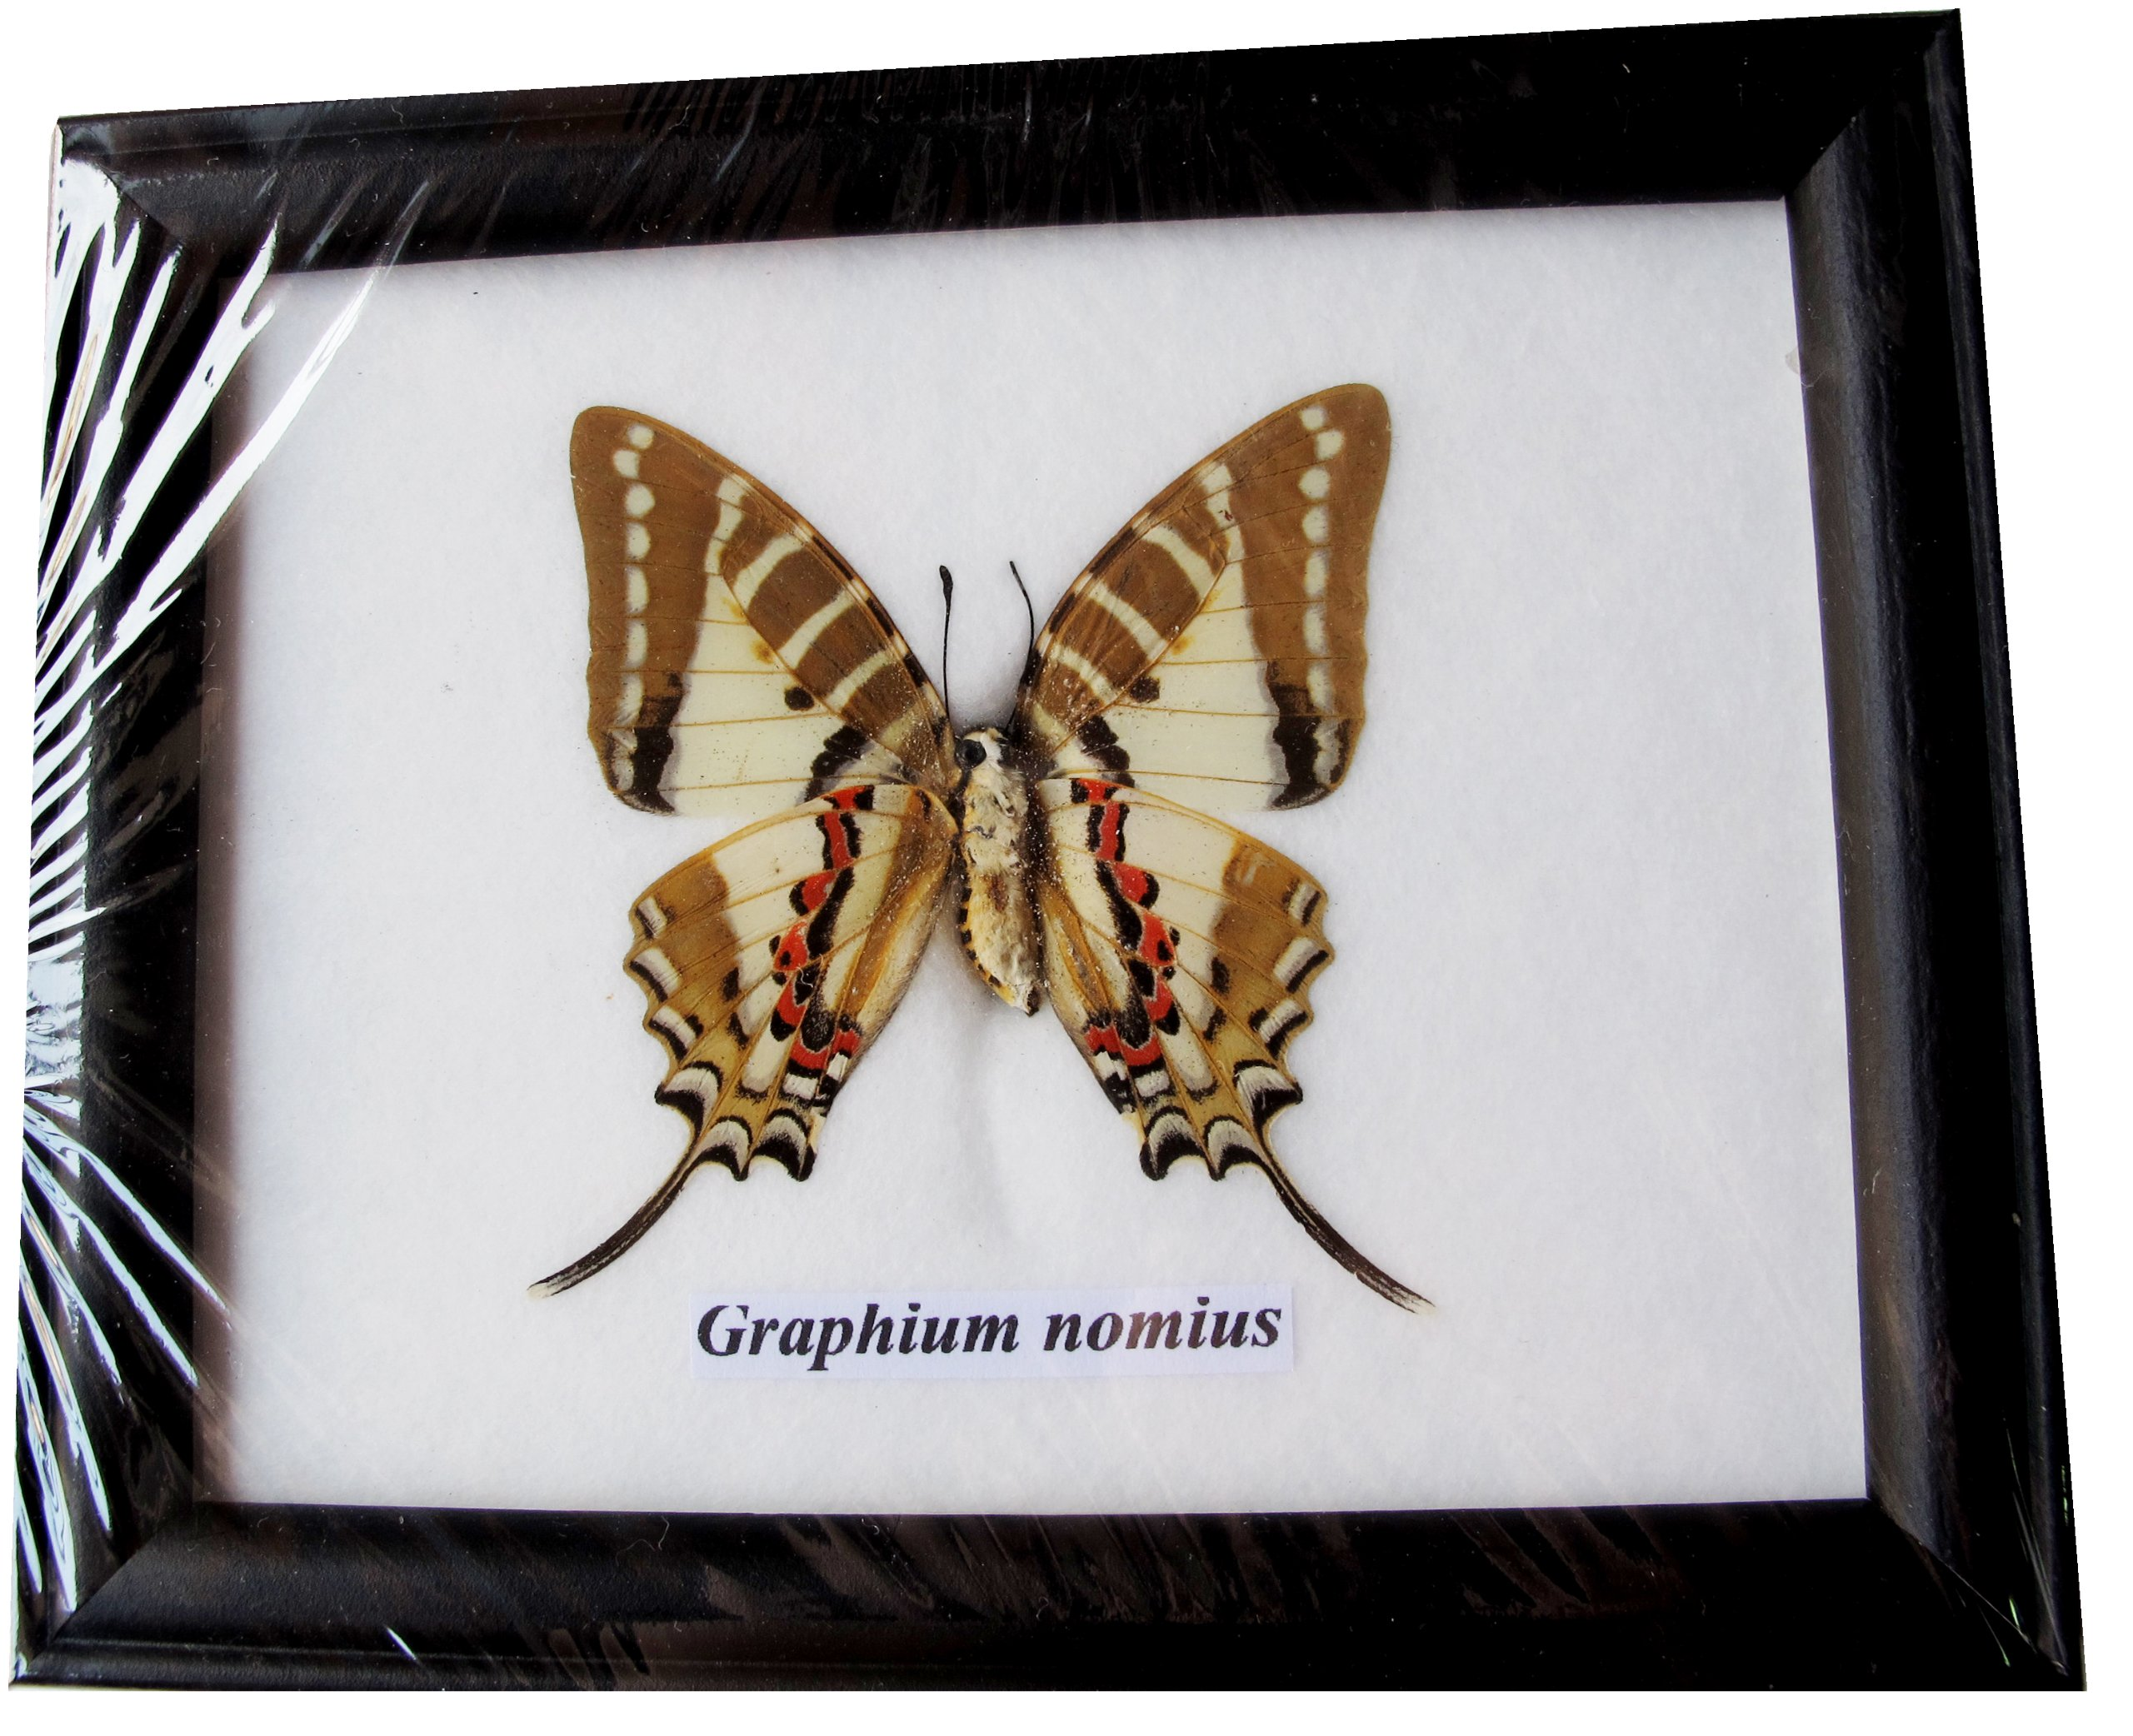 FRAMED REAL BEAUTIFUL GRAPHIUM NONIUS (FONT) BUTTERFLY DISPLAY INSECT TAXIDERMY 5''X5''X1'' by Thai